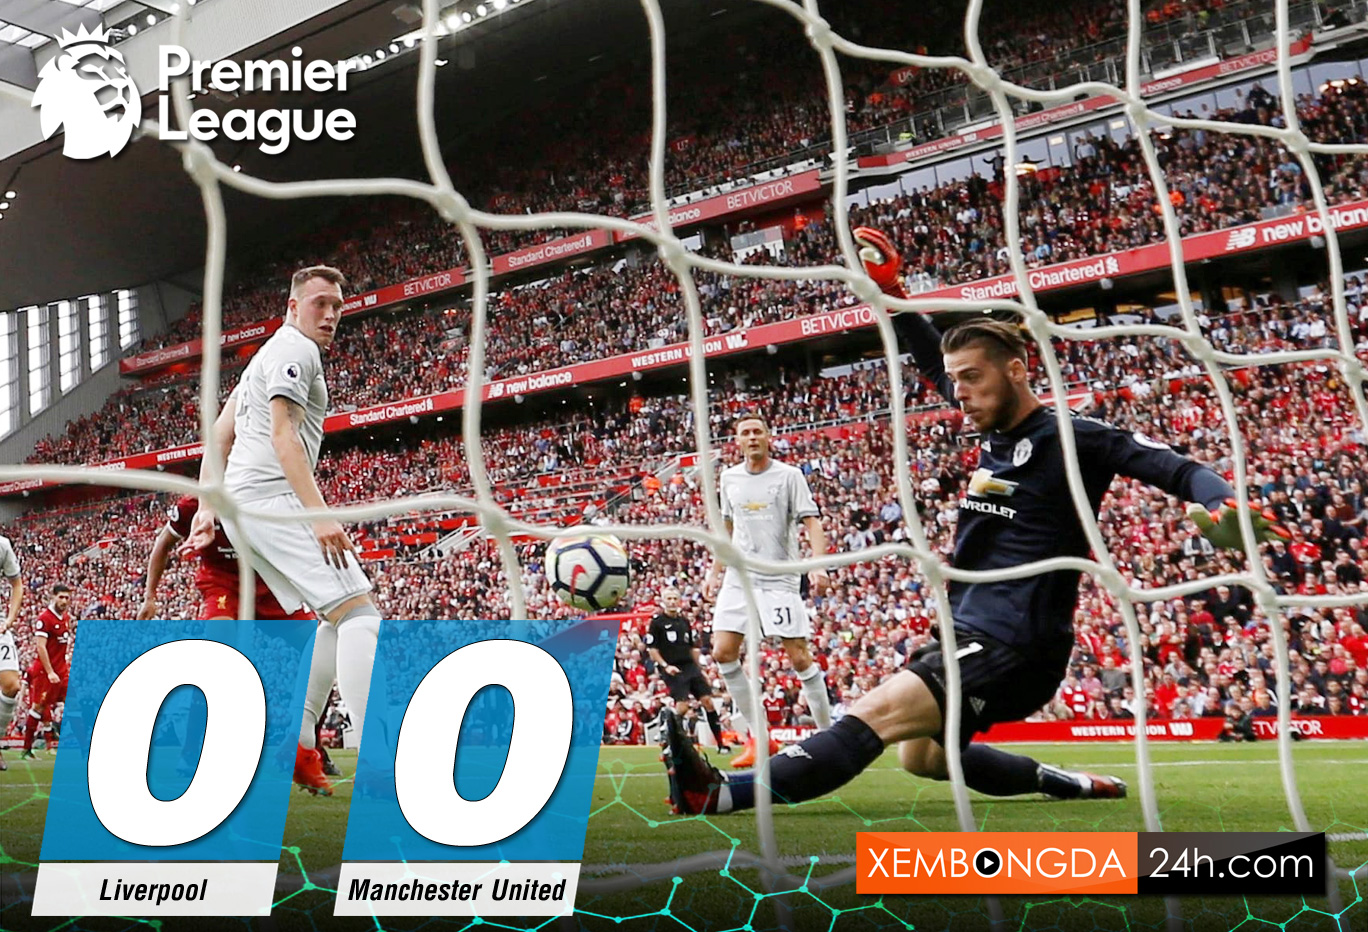 kết quả liverpool 0-0 manchester united